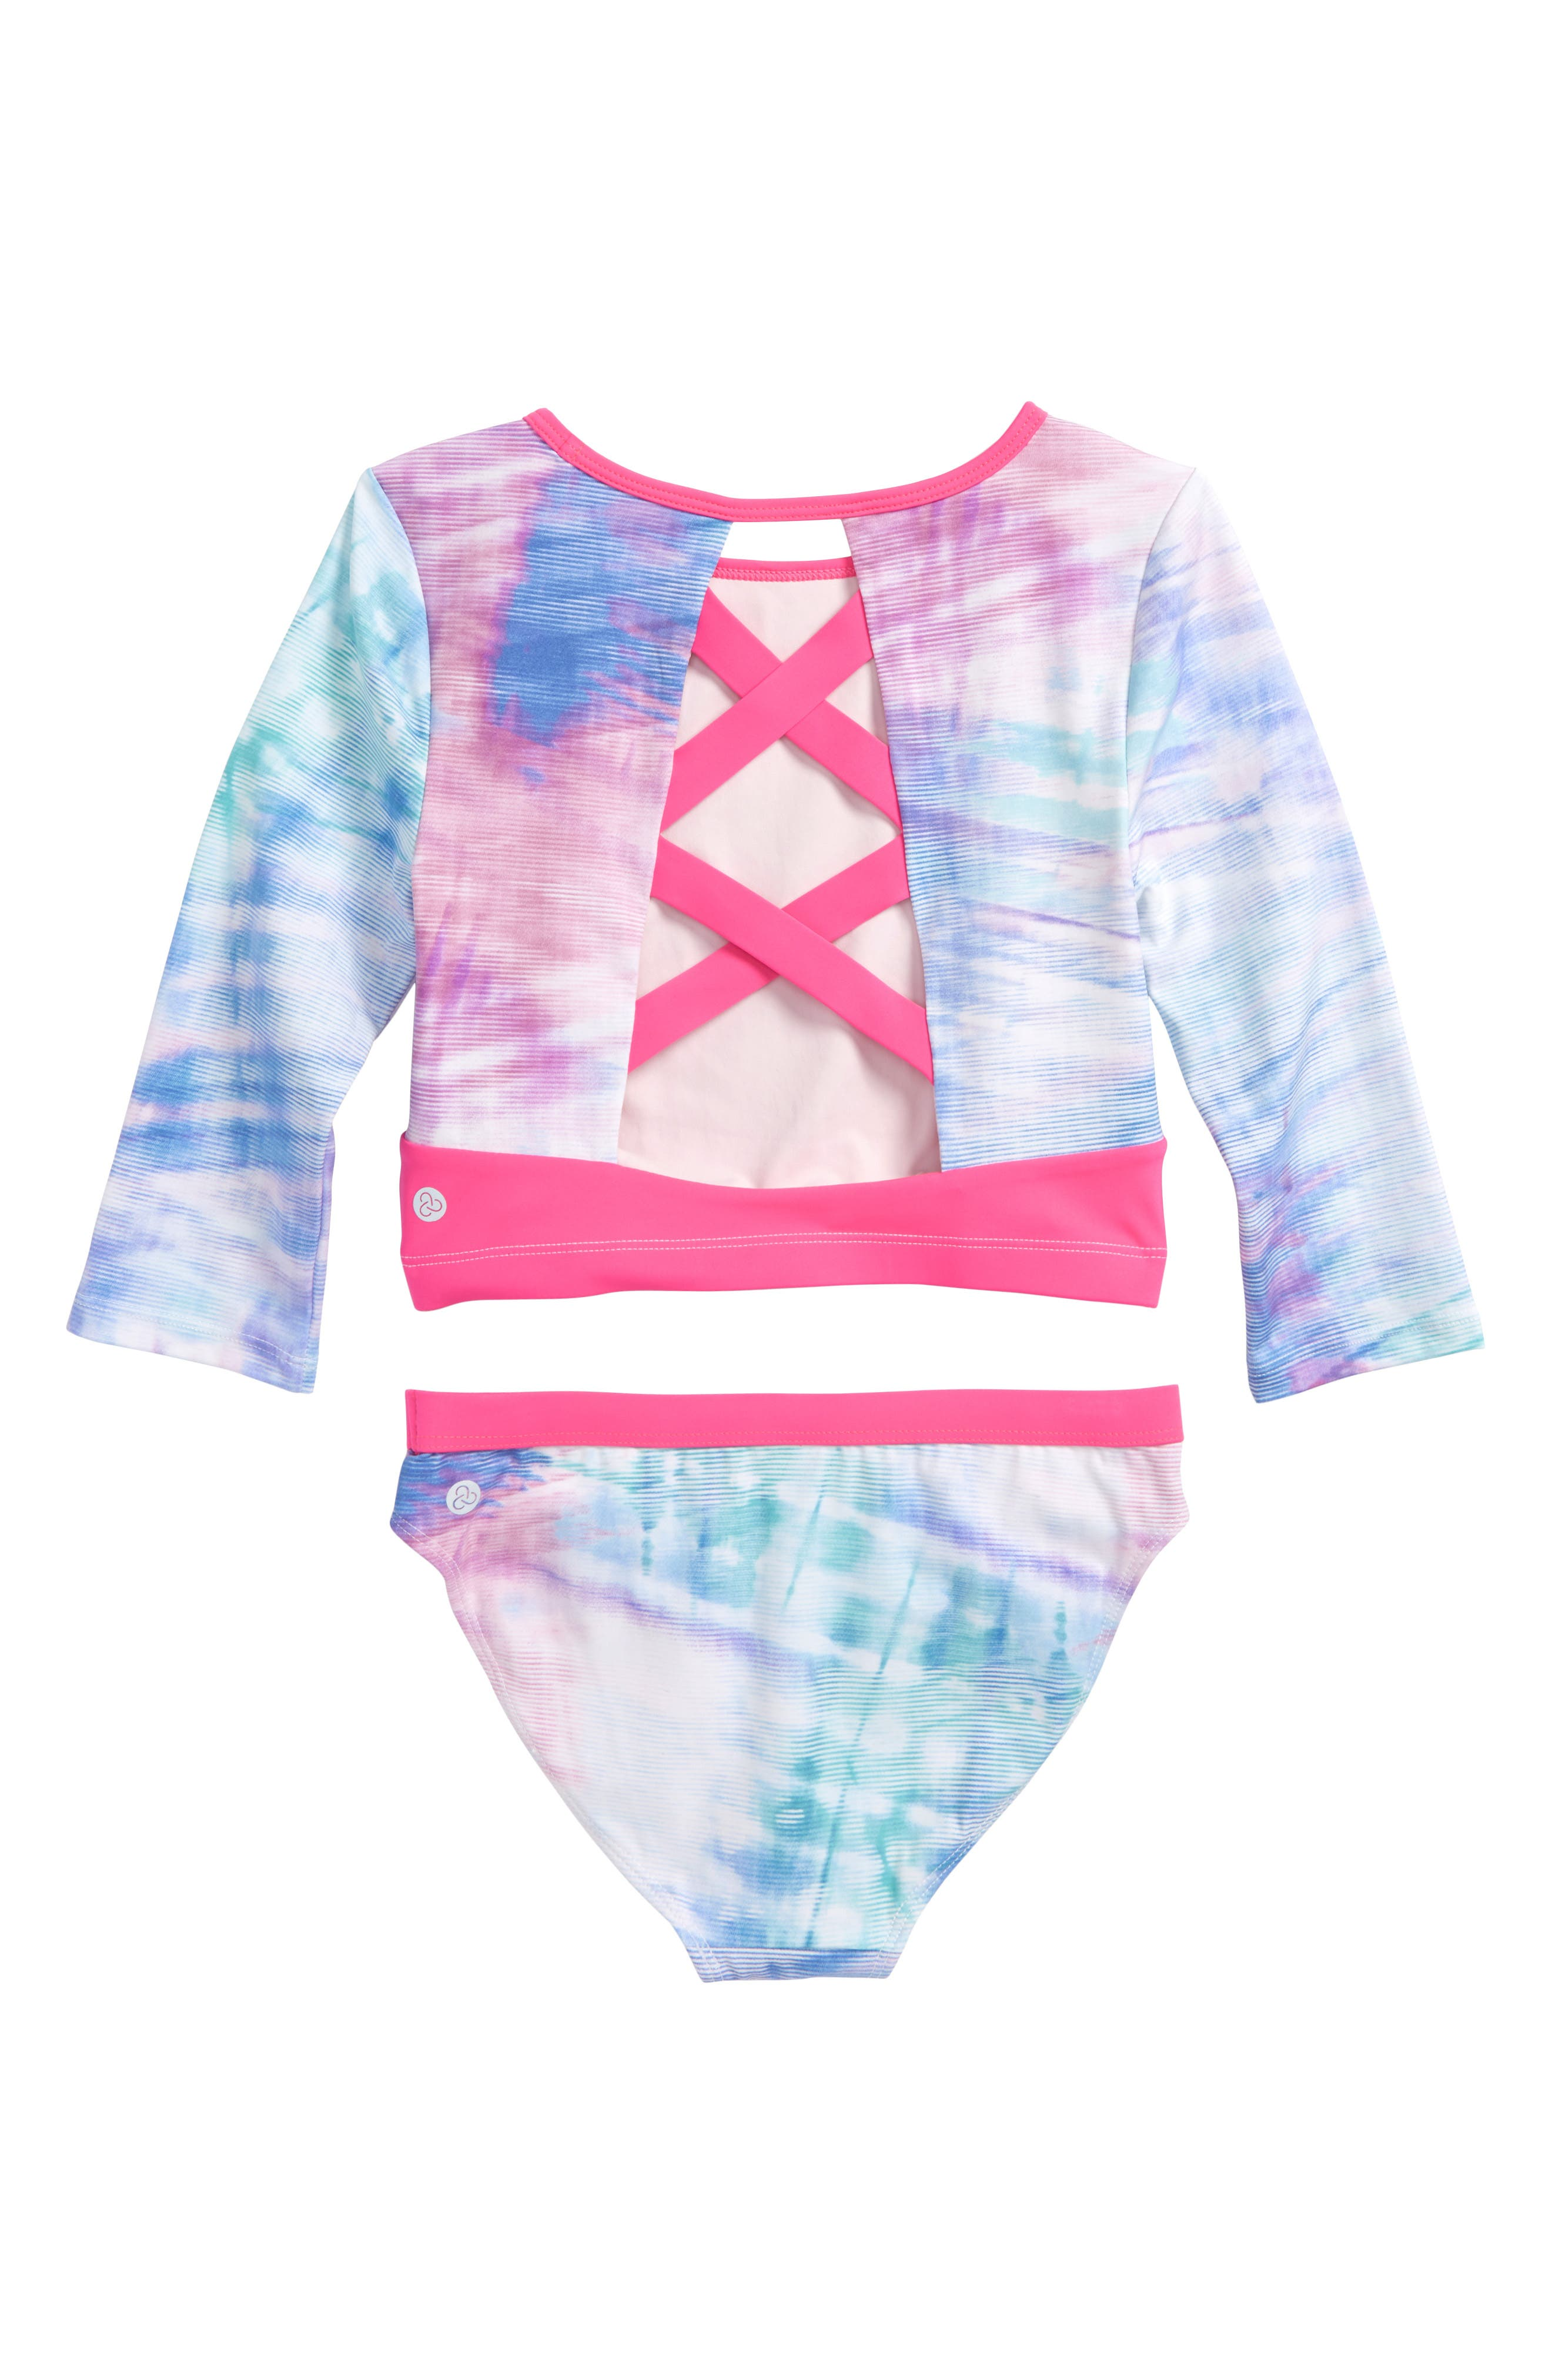 Scoop Two-Piece Rashguard Swimsuit,                             Alternate thumbnail 2, color,                             Pink Neon Striped Wash